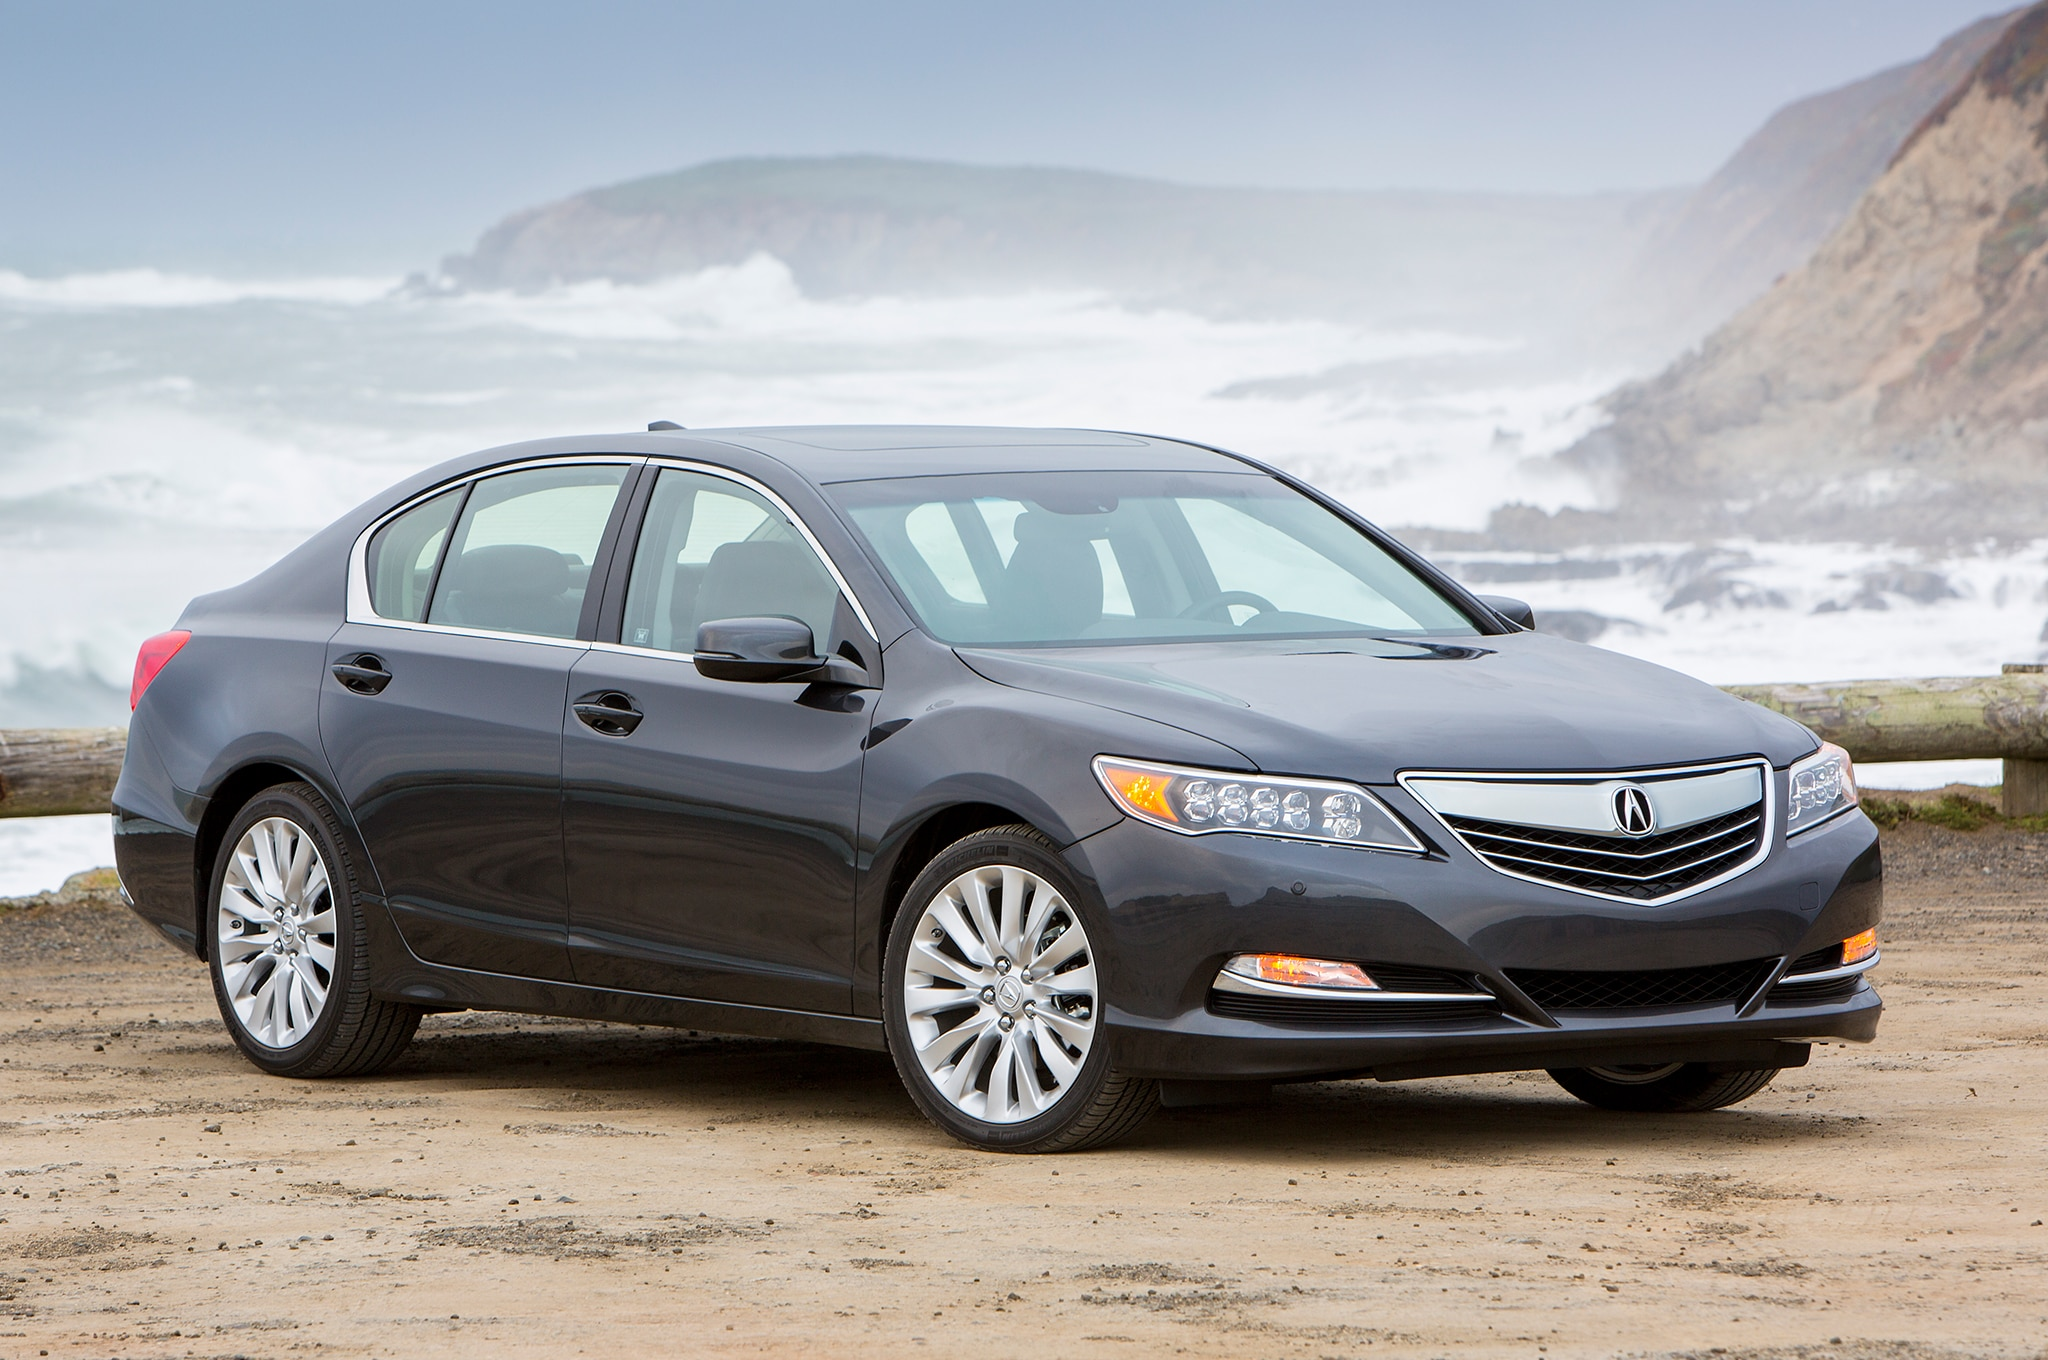 2014 Acura RLX Front Three Quarters View 0021